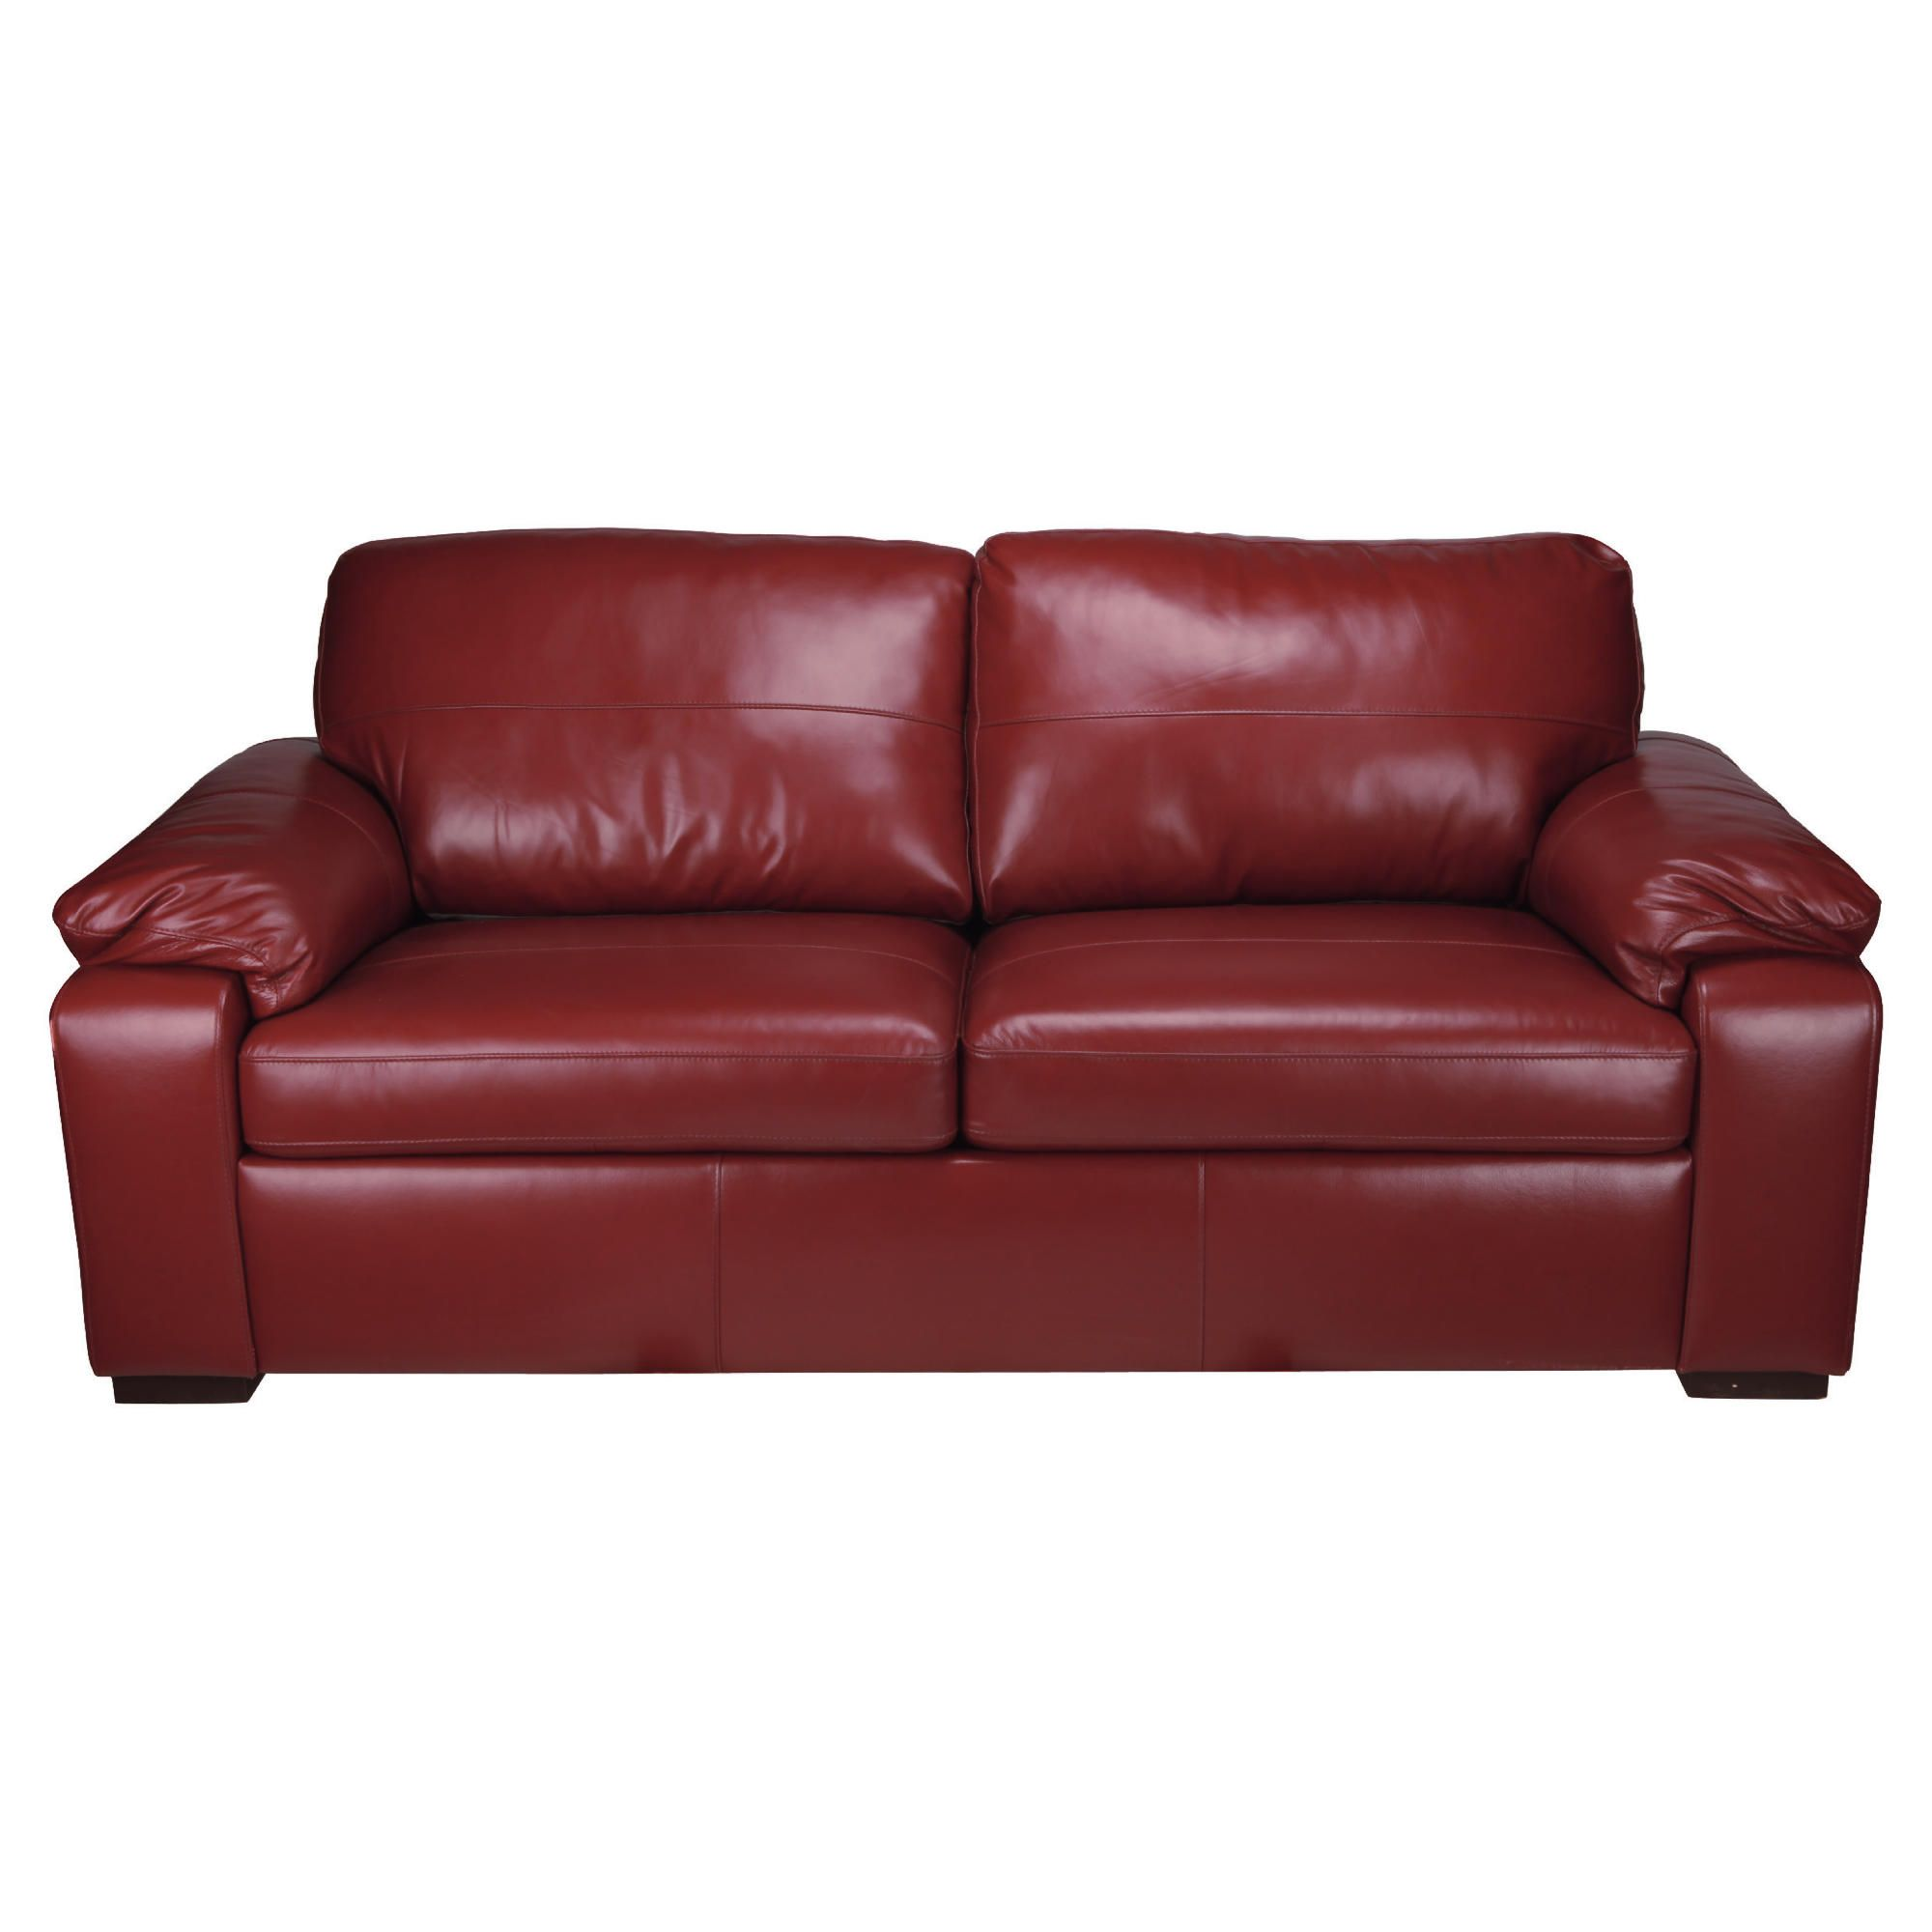 Ashmore Leather Sofa Bed, Red at Tesco Direct